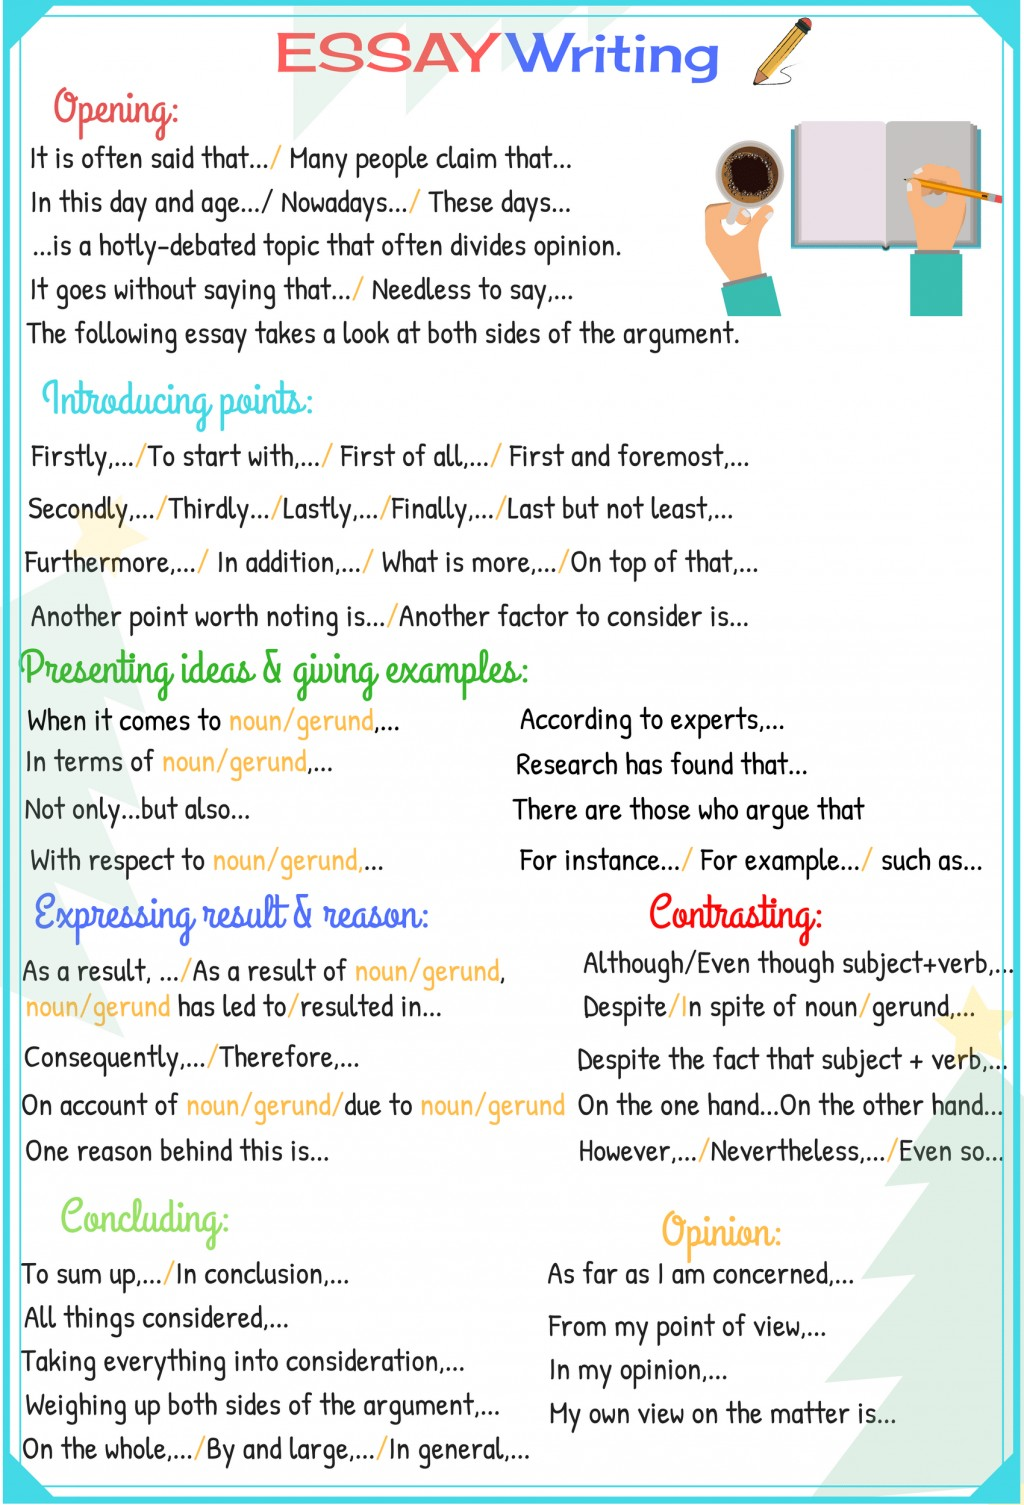 001 Steps To Writing An Essay Stunning 4th Grade Middle School Conclusion Large